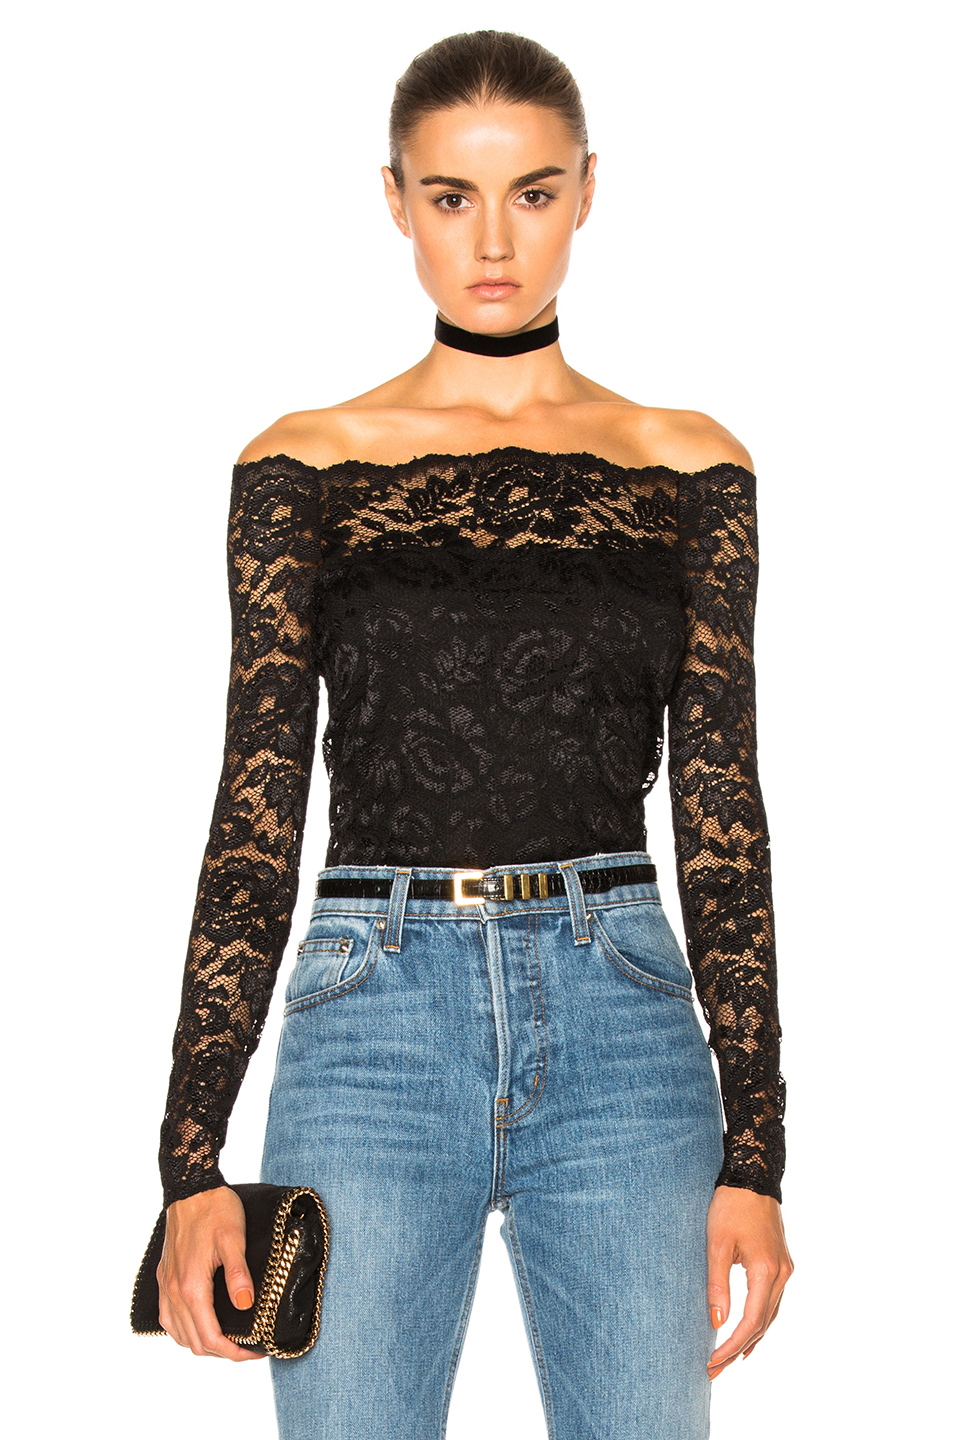 b9d2fb9d04daed L'Agence Heidi Lace Off-The-Shoulder Top - Black | ModeSens